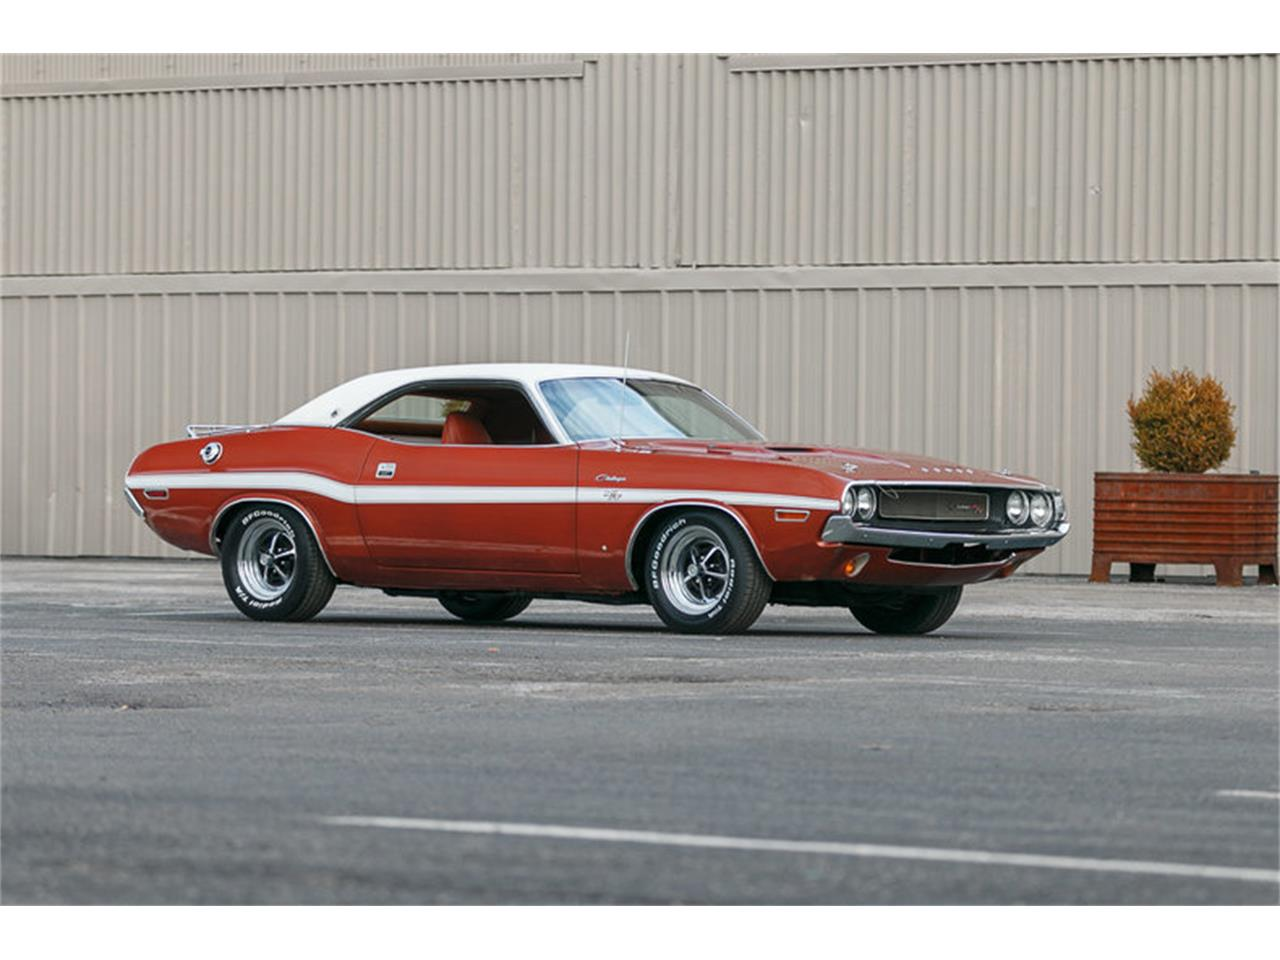 Large Picture of Classic 1970 Dodge Challenger located in St. Charles Missouri - $47,995.00 - KHEB